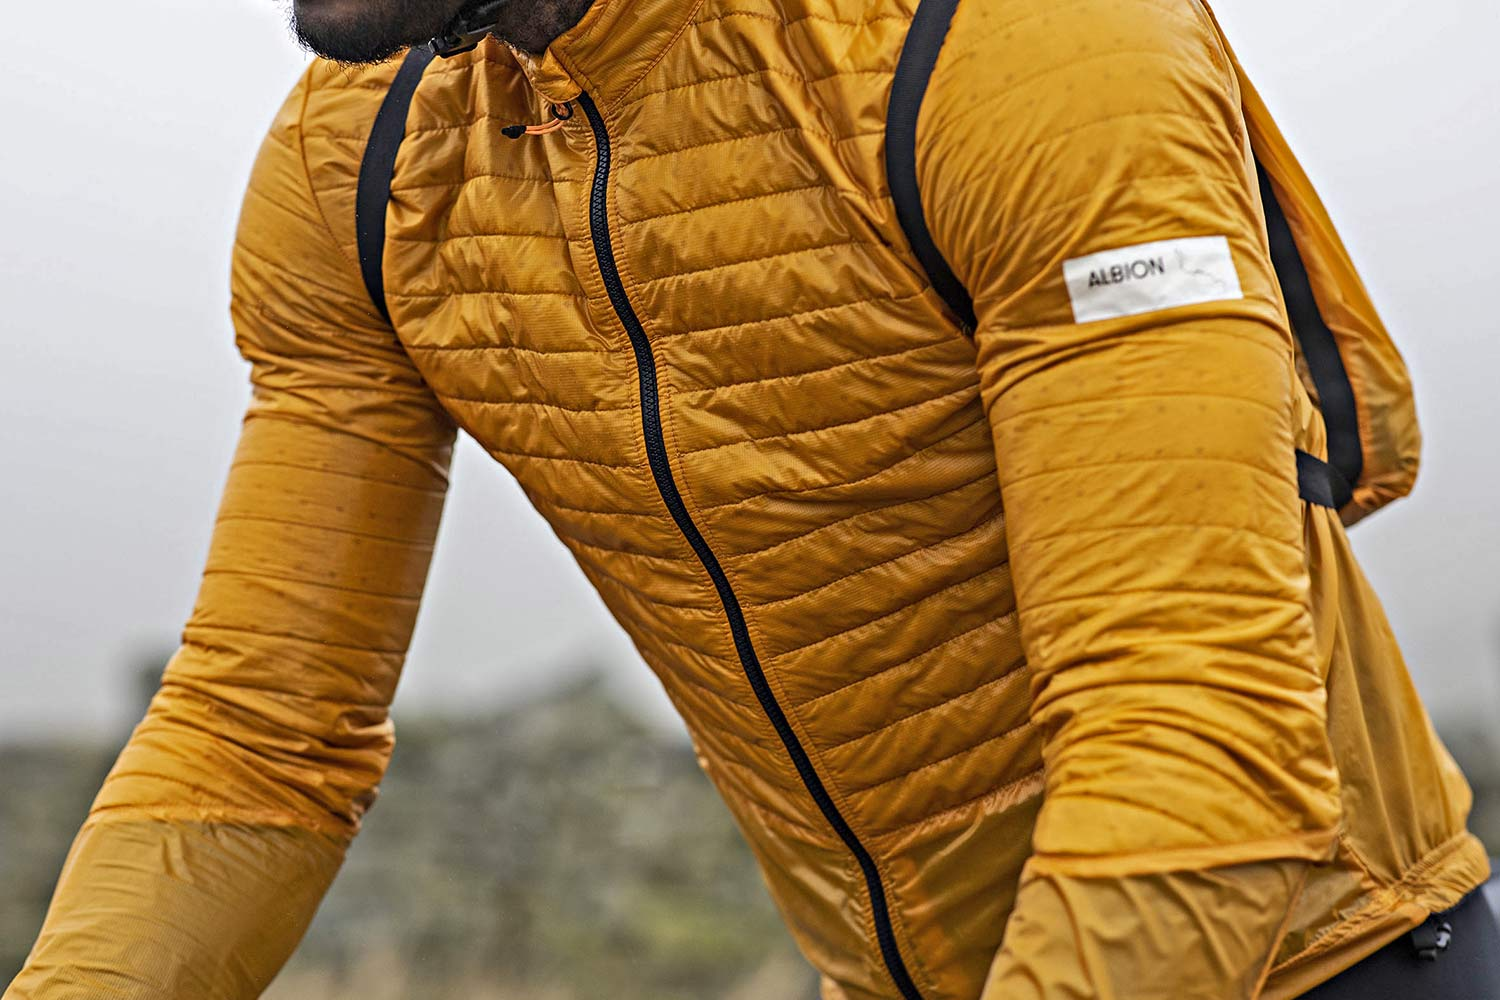 Albion Ultralight Insulated Jacket, ultra lightweight packable breathable eco cycling jacket and backpack,detail up close